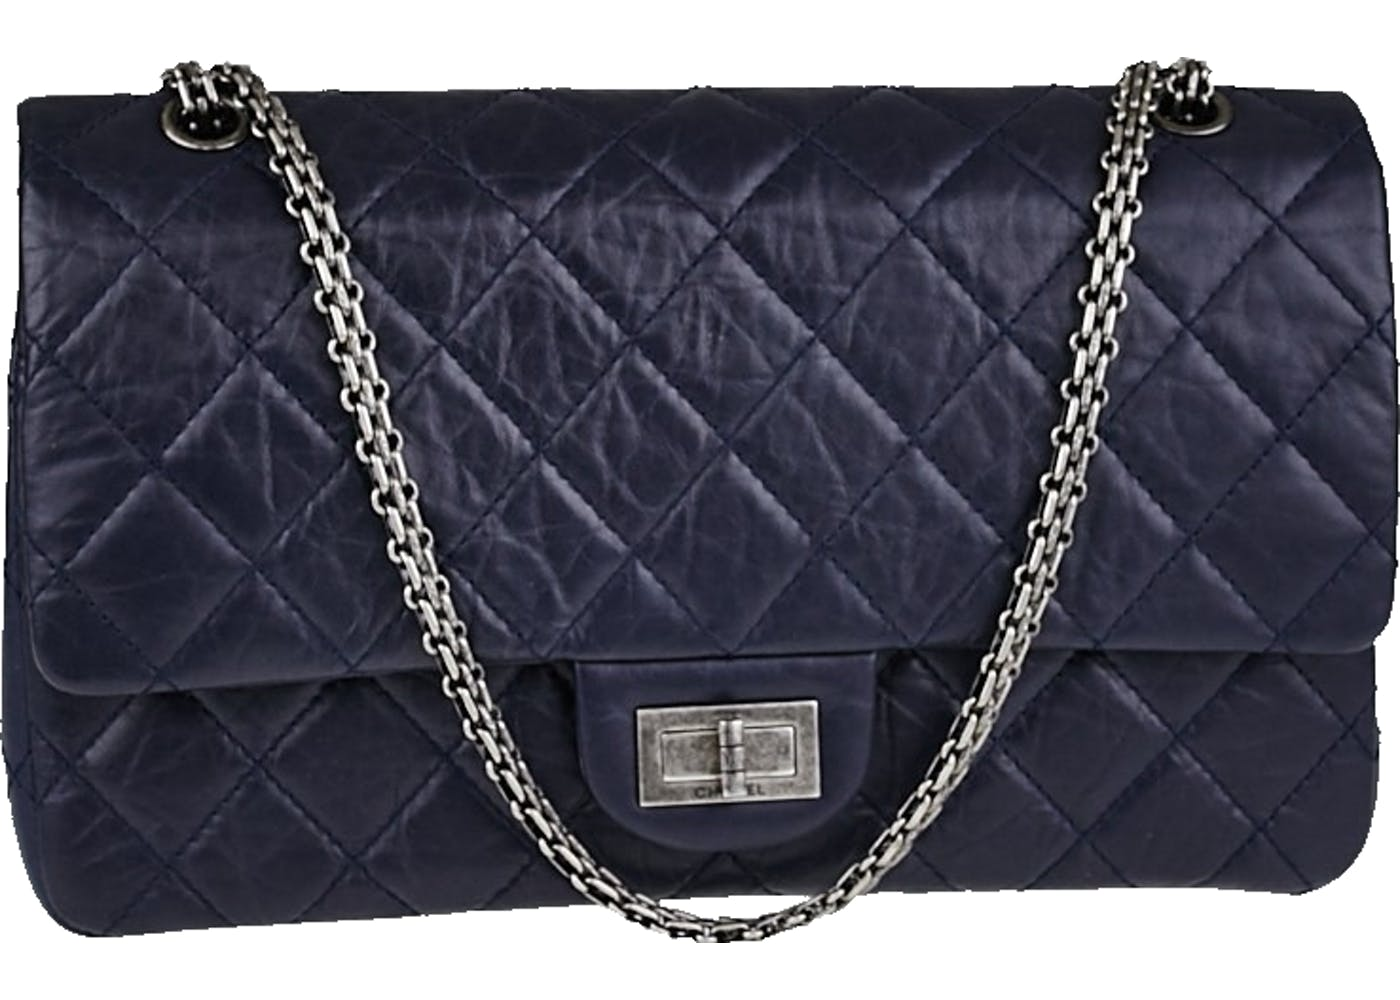 b4a6e1ea8a1a This material is popular among the reissue flaps, adding texture to the classic  Chanel design.